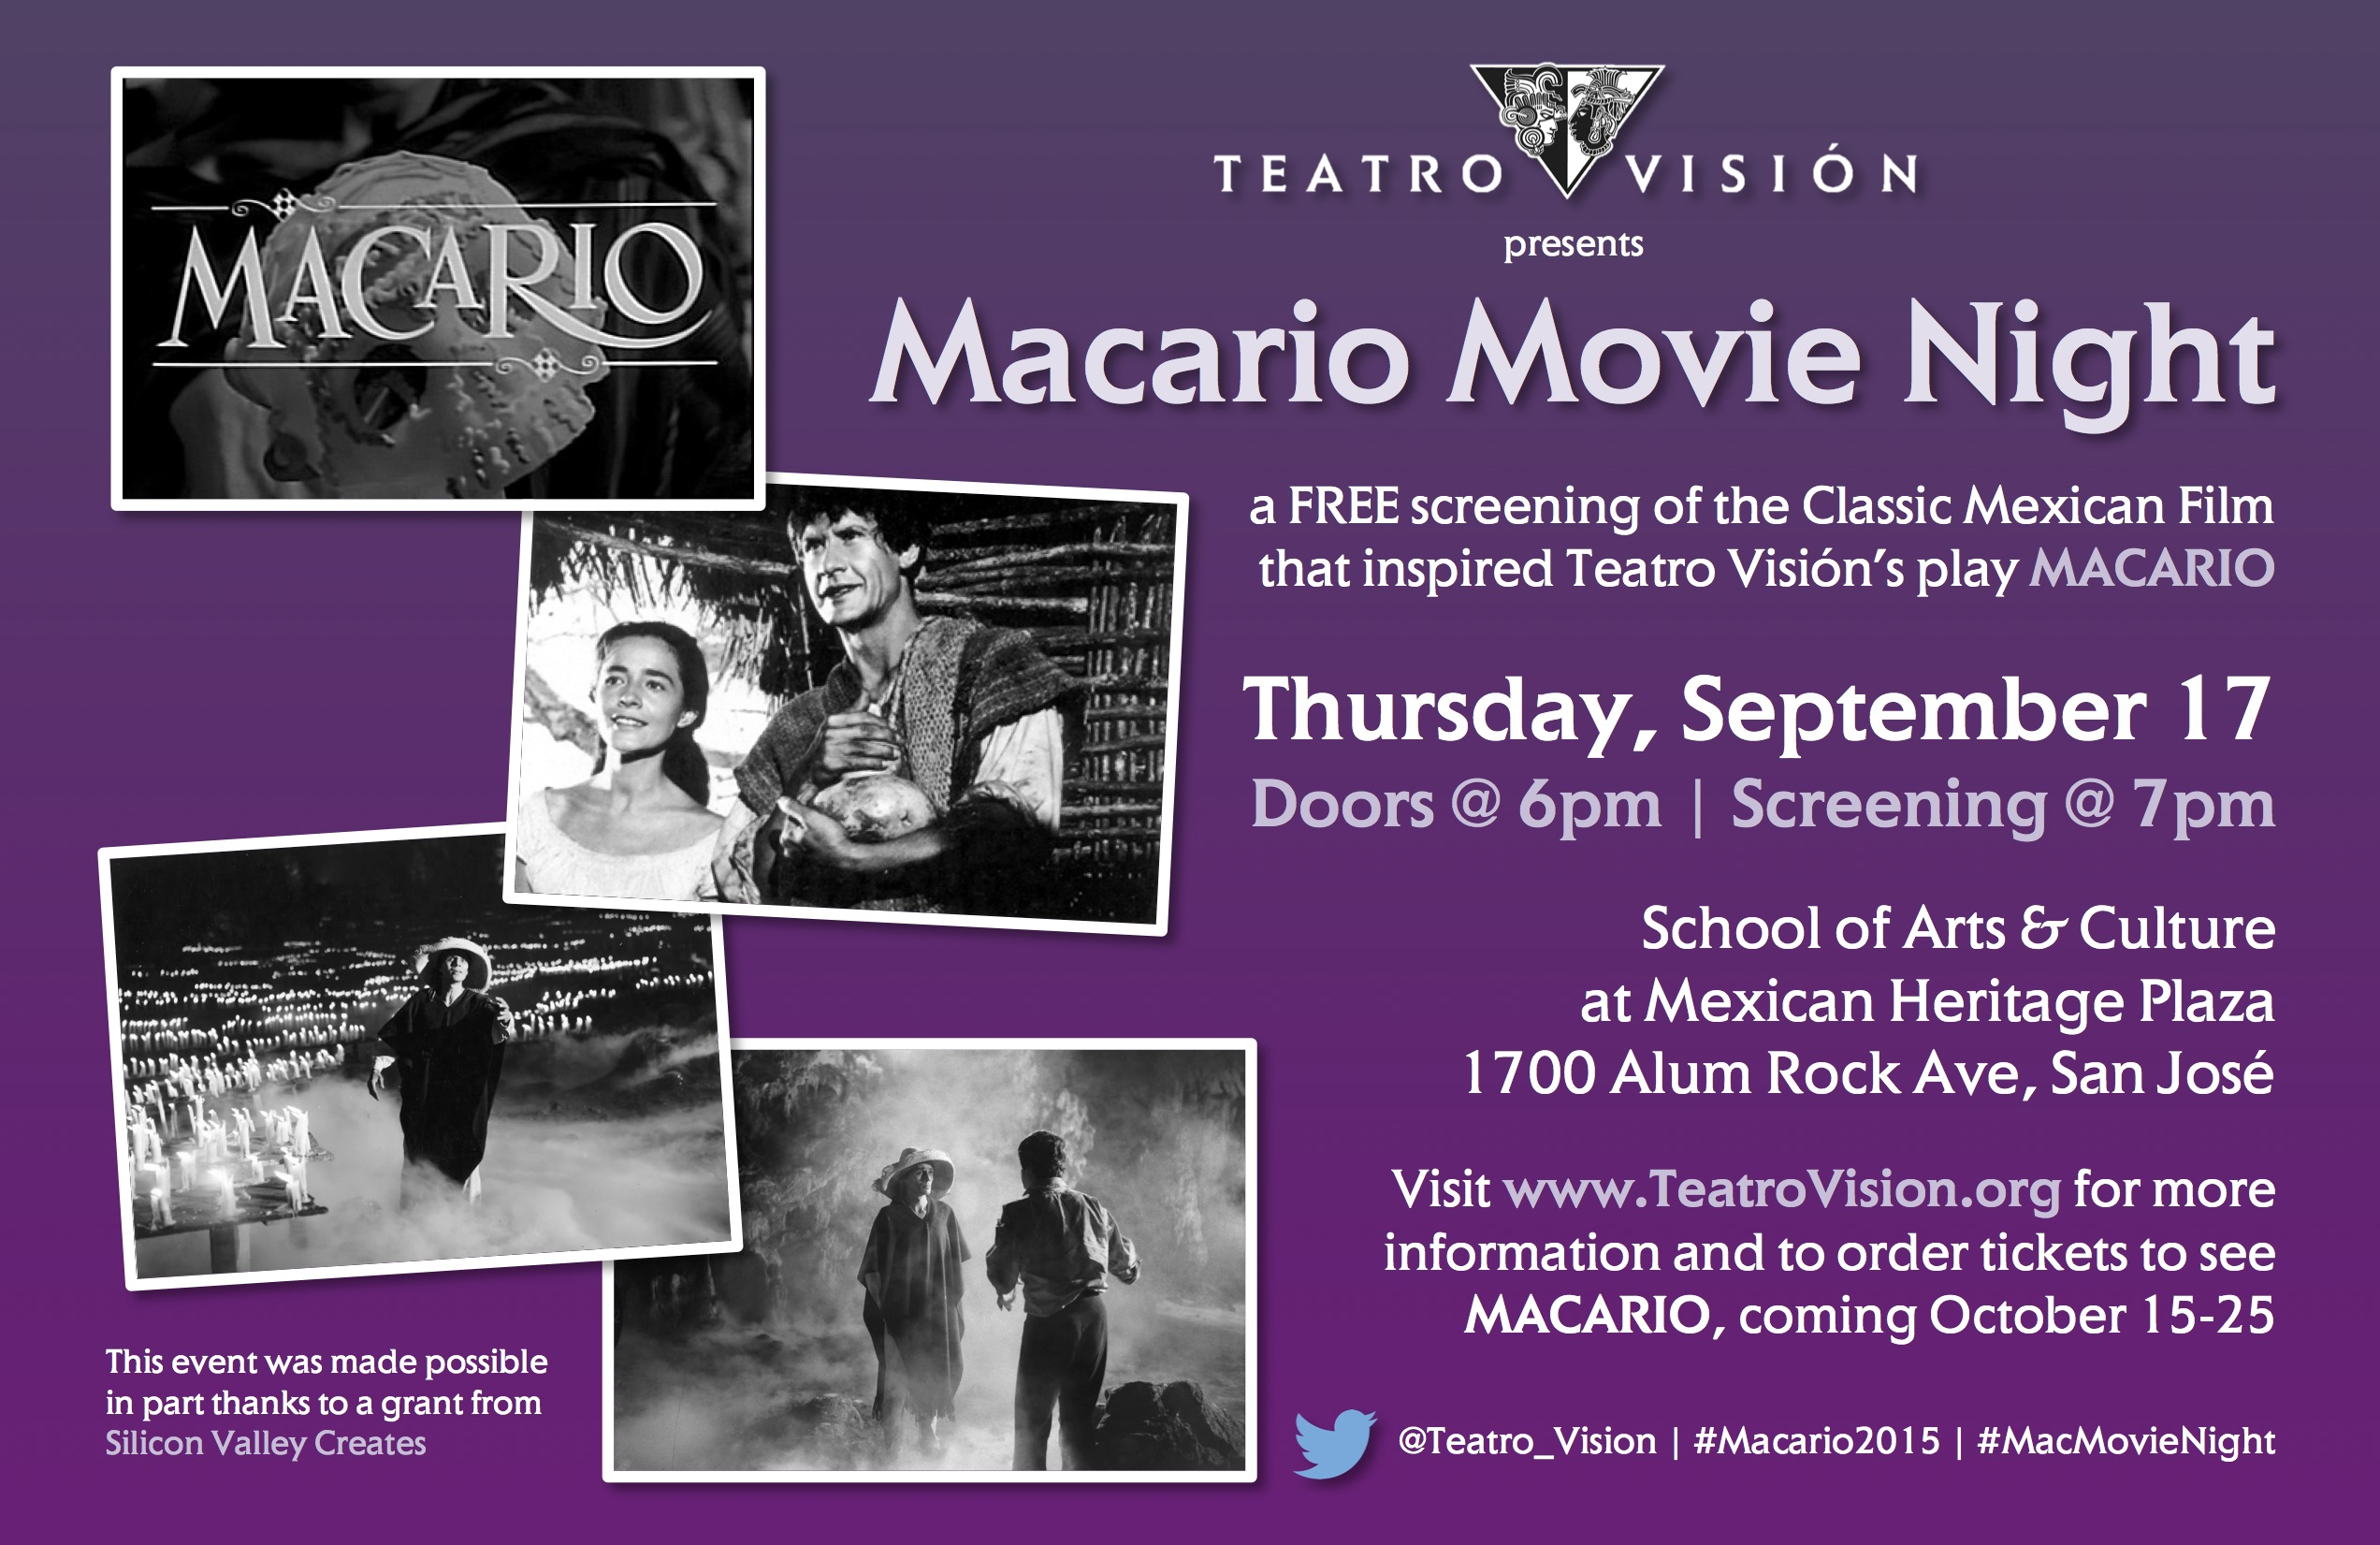 MACARIO 2015 Movie Night flyer